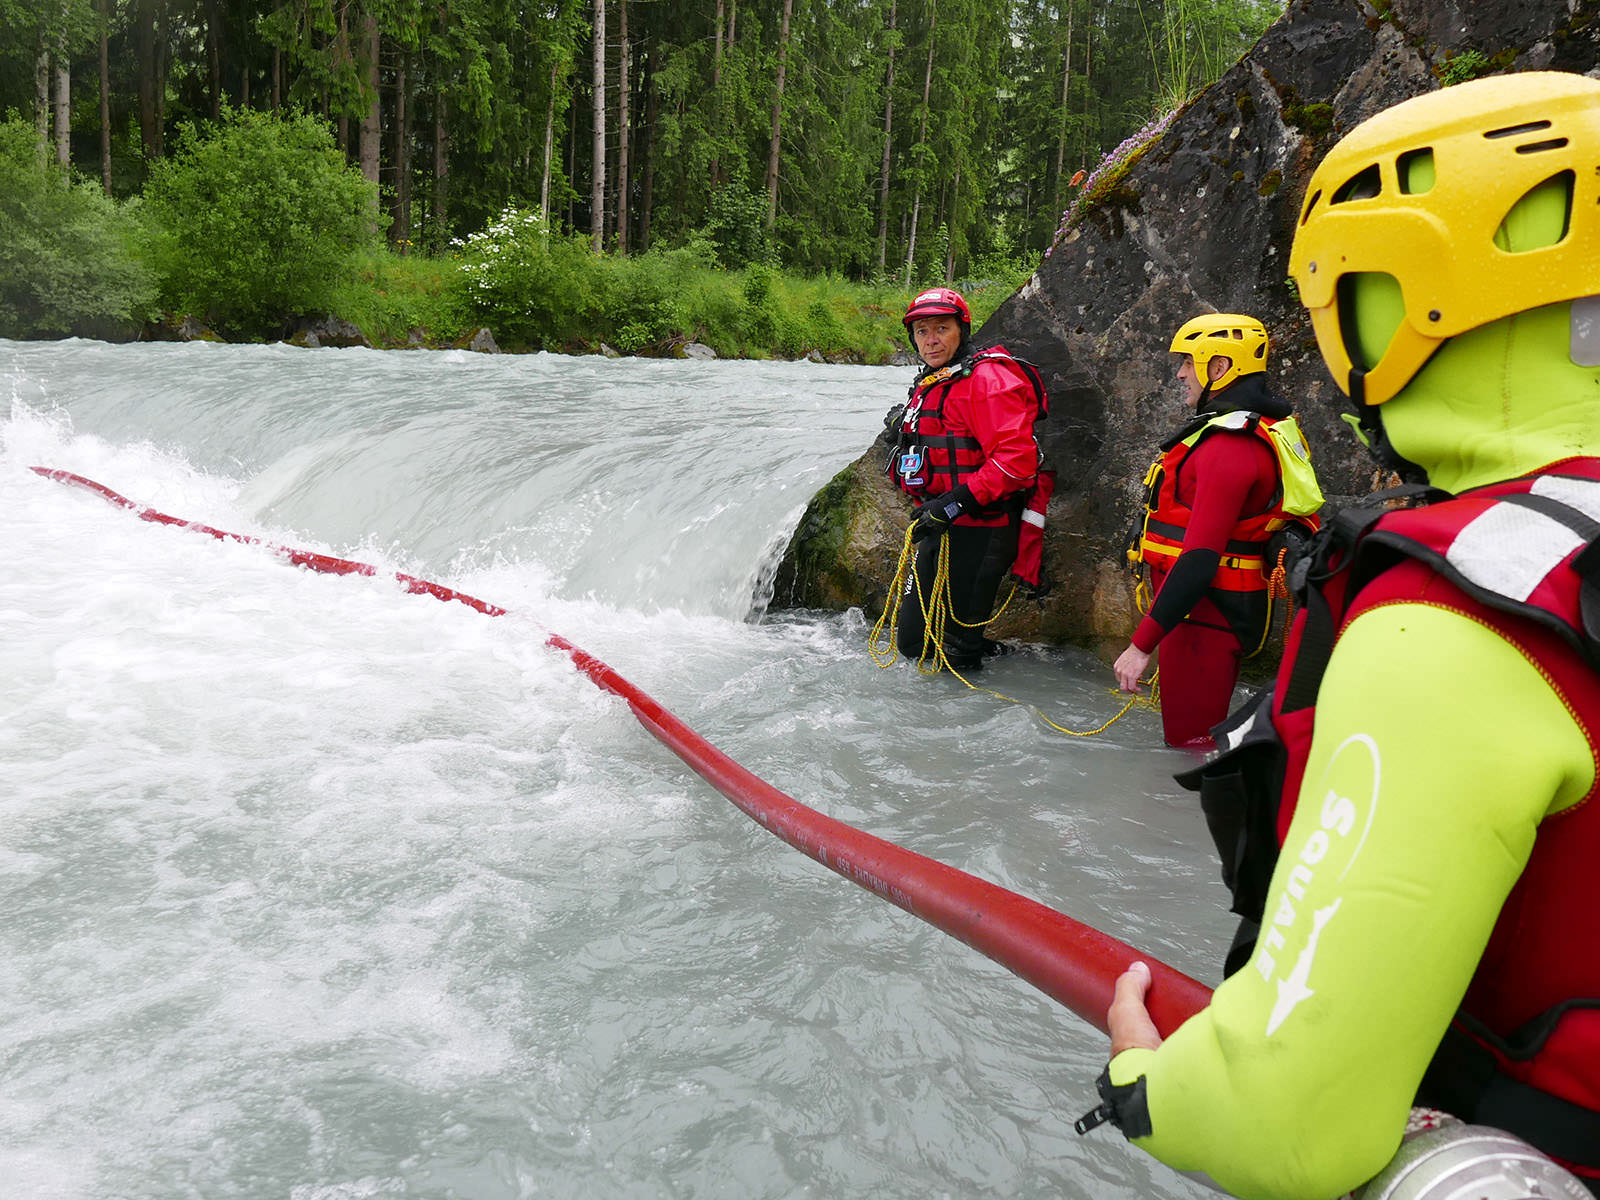 Inflated Firehose / Rescue from bridges